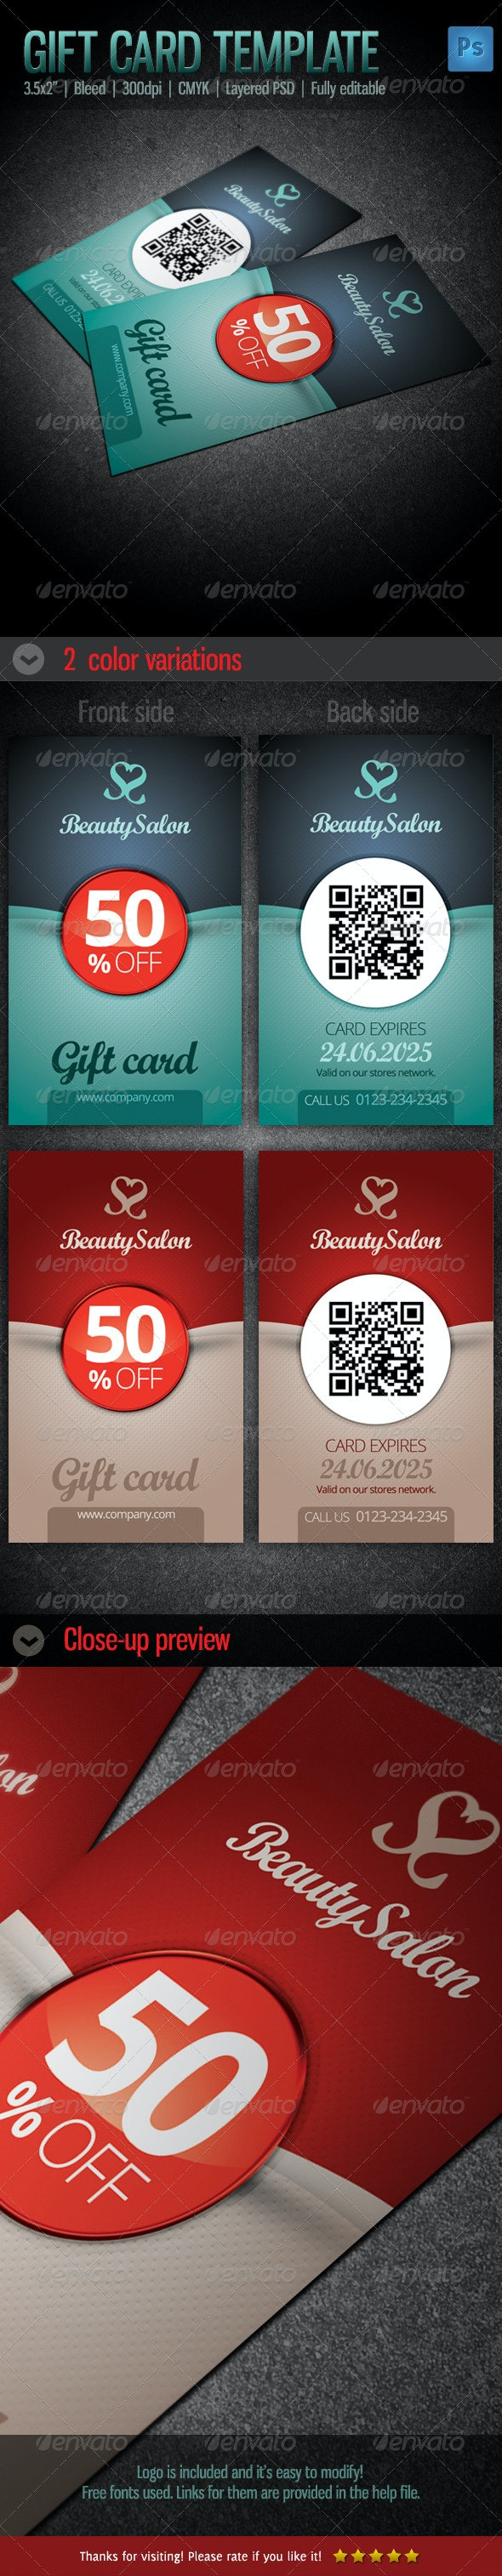 Gift / Voucher Card Template - Cards & Invites Print Templates